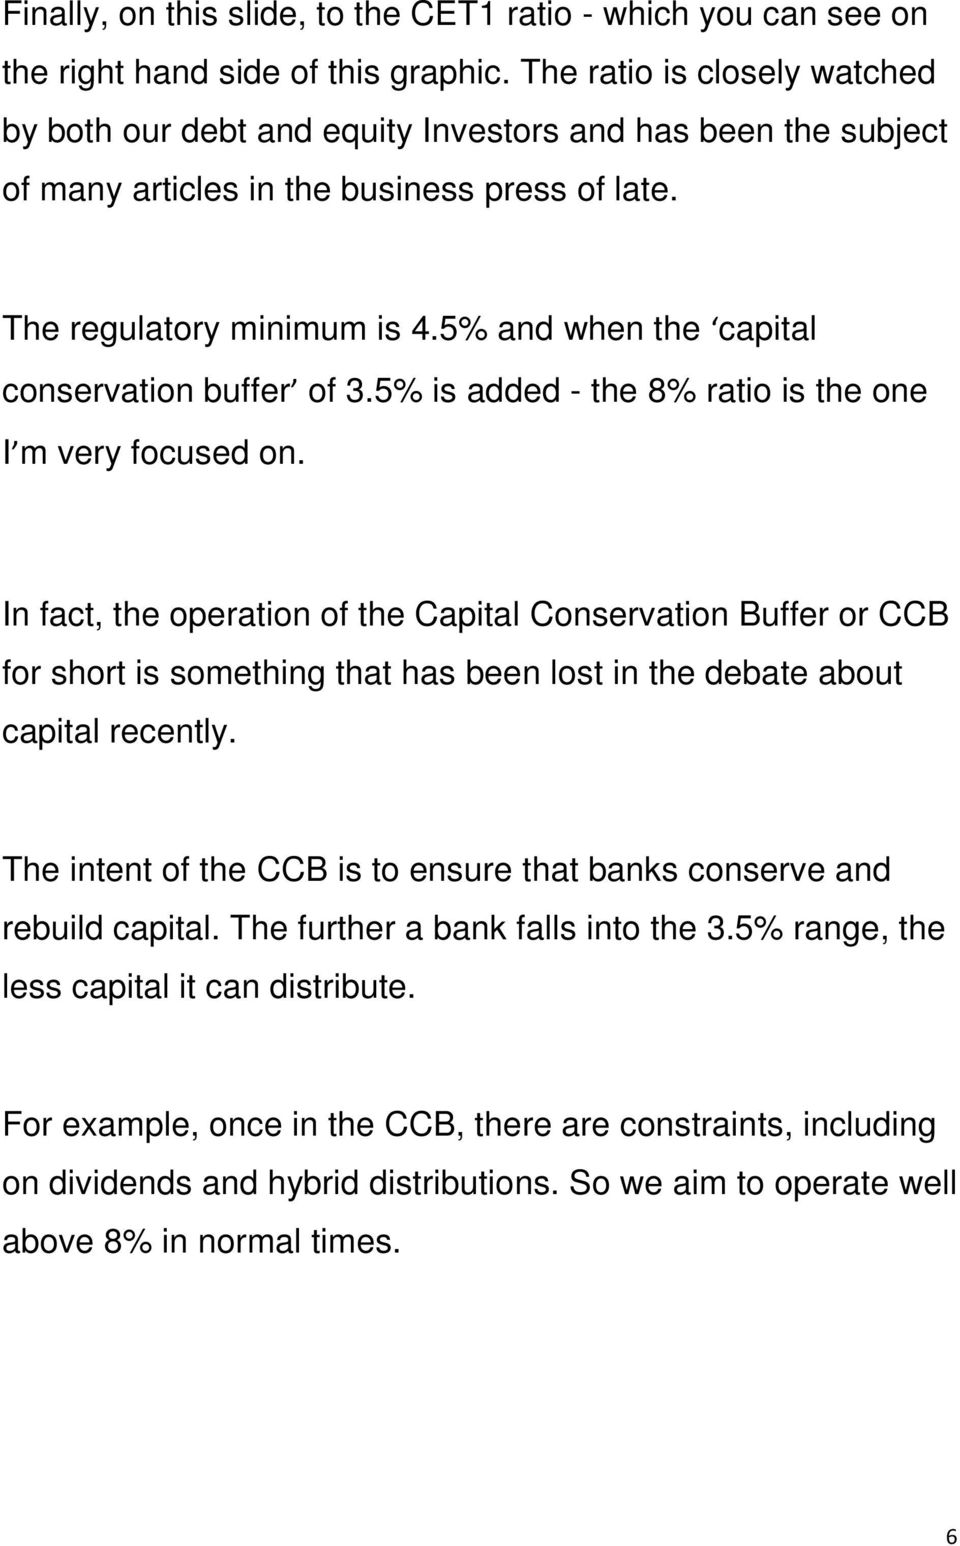 5% and when the capital conservation buffer of 3.5% is added - the 8% ratio is the one I m very focused on.